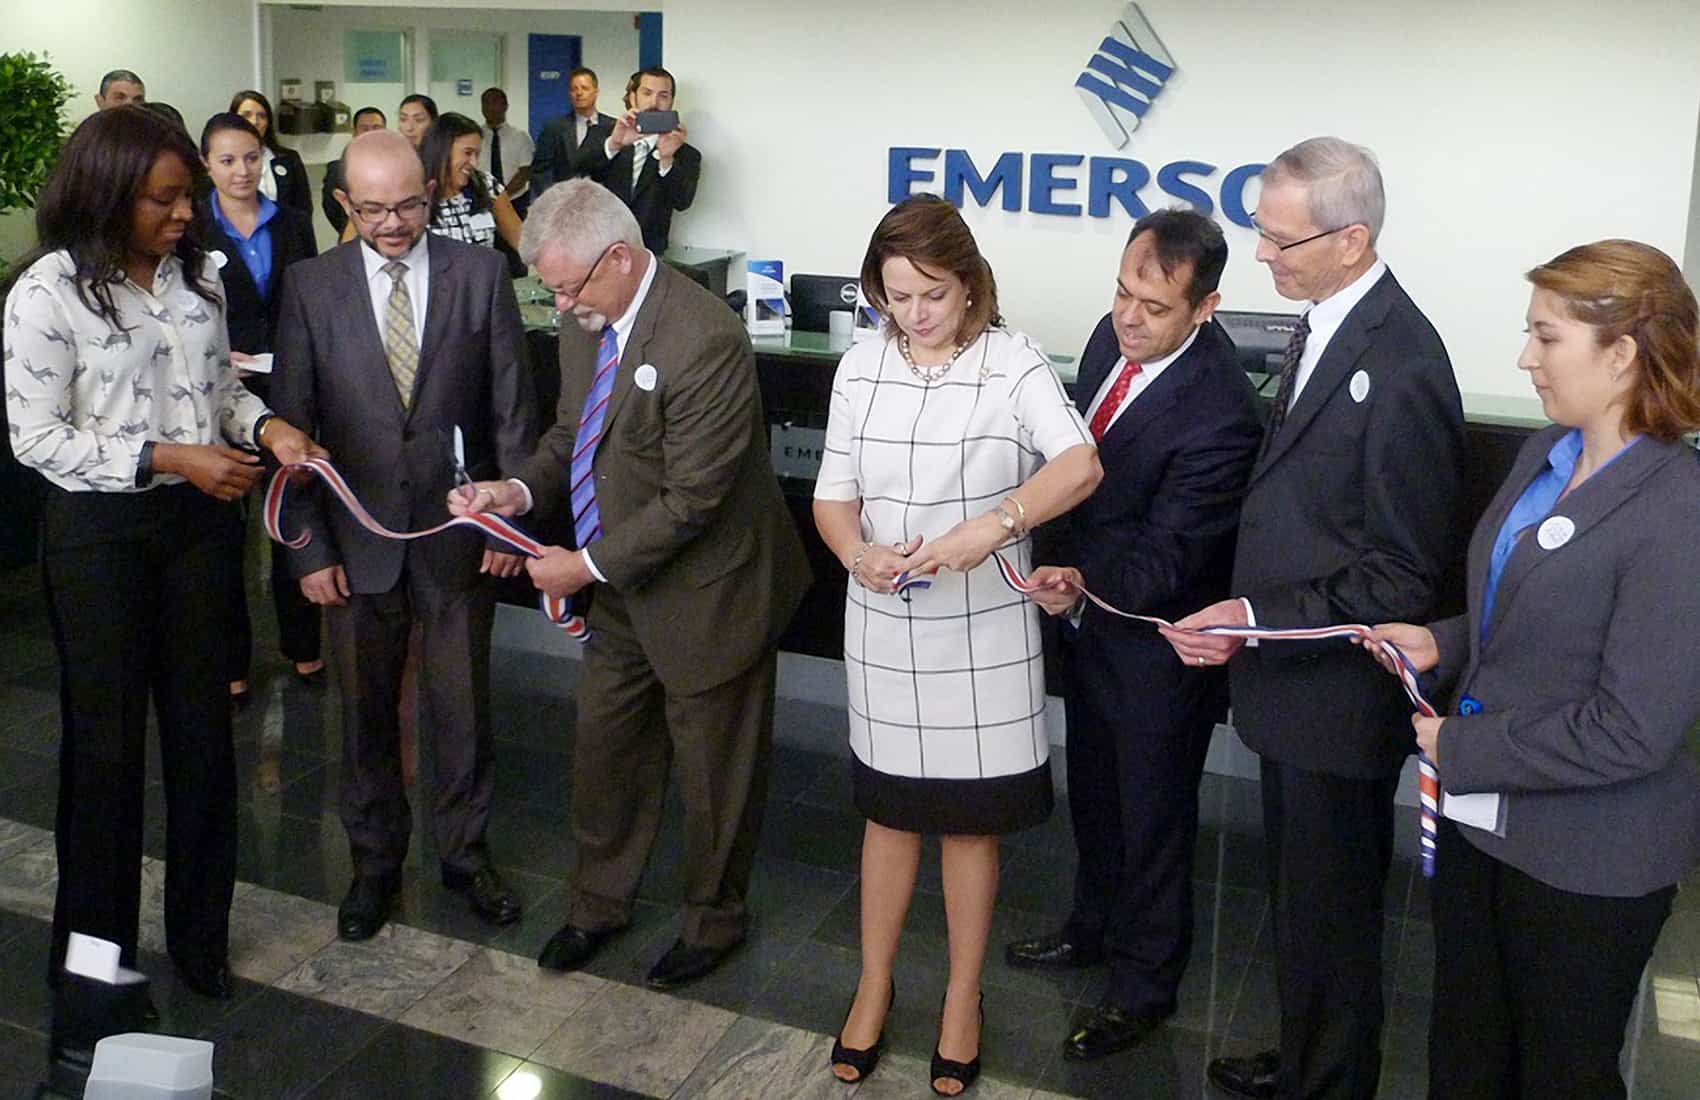 Vice President Ana Helena Chacón Echeverría attends the opening ceremony of Emerson's new facilities in Escazú, southwest of the capital San José.